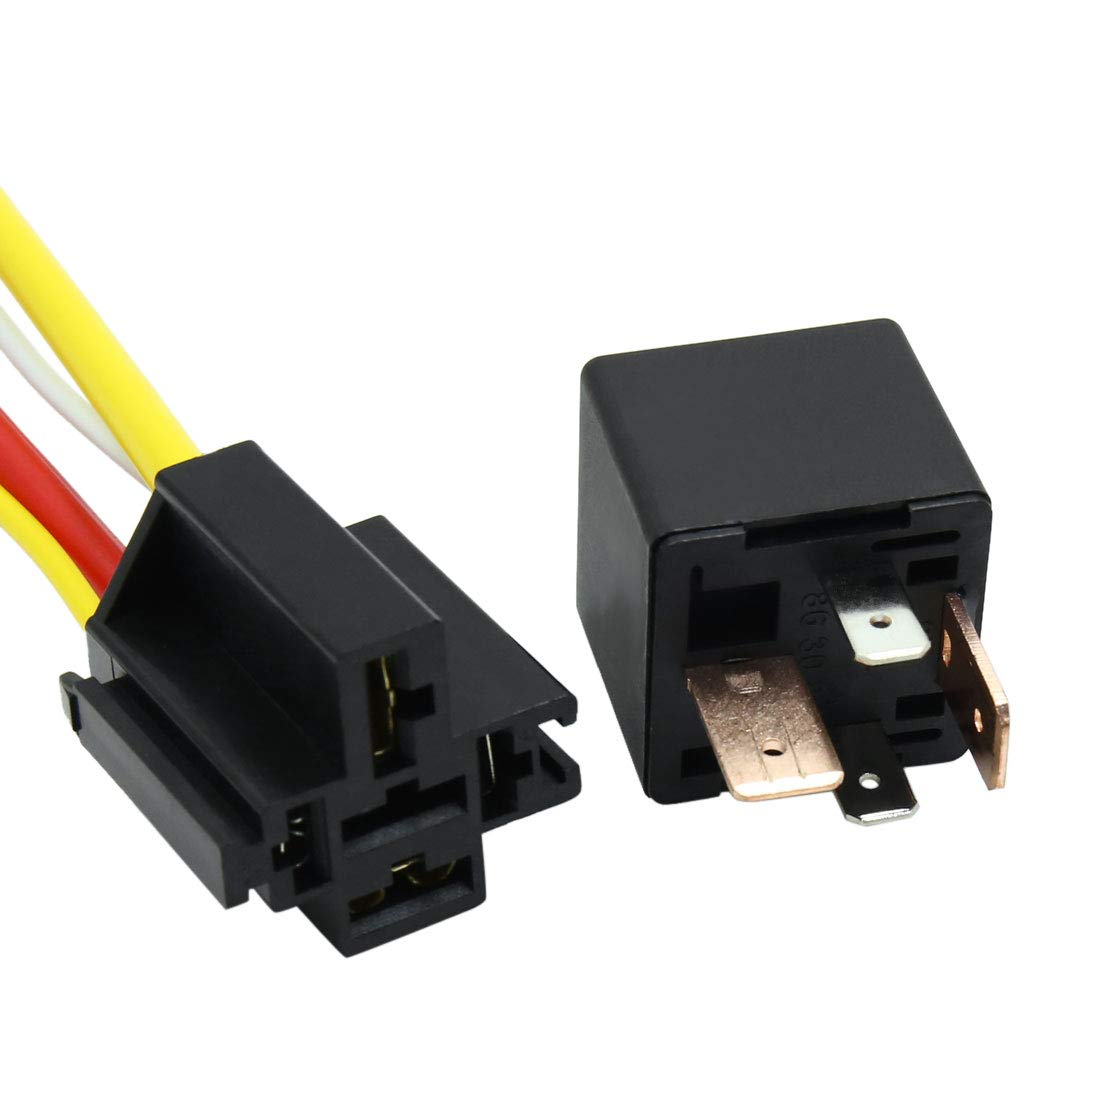 uxcell DC 12V 80A SPST Automotive Car Relay 4 Pin 4 Wires w//Harness Socket Plug 3pcs